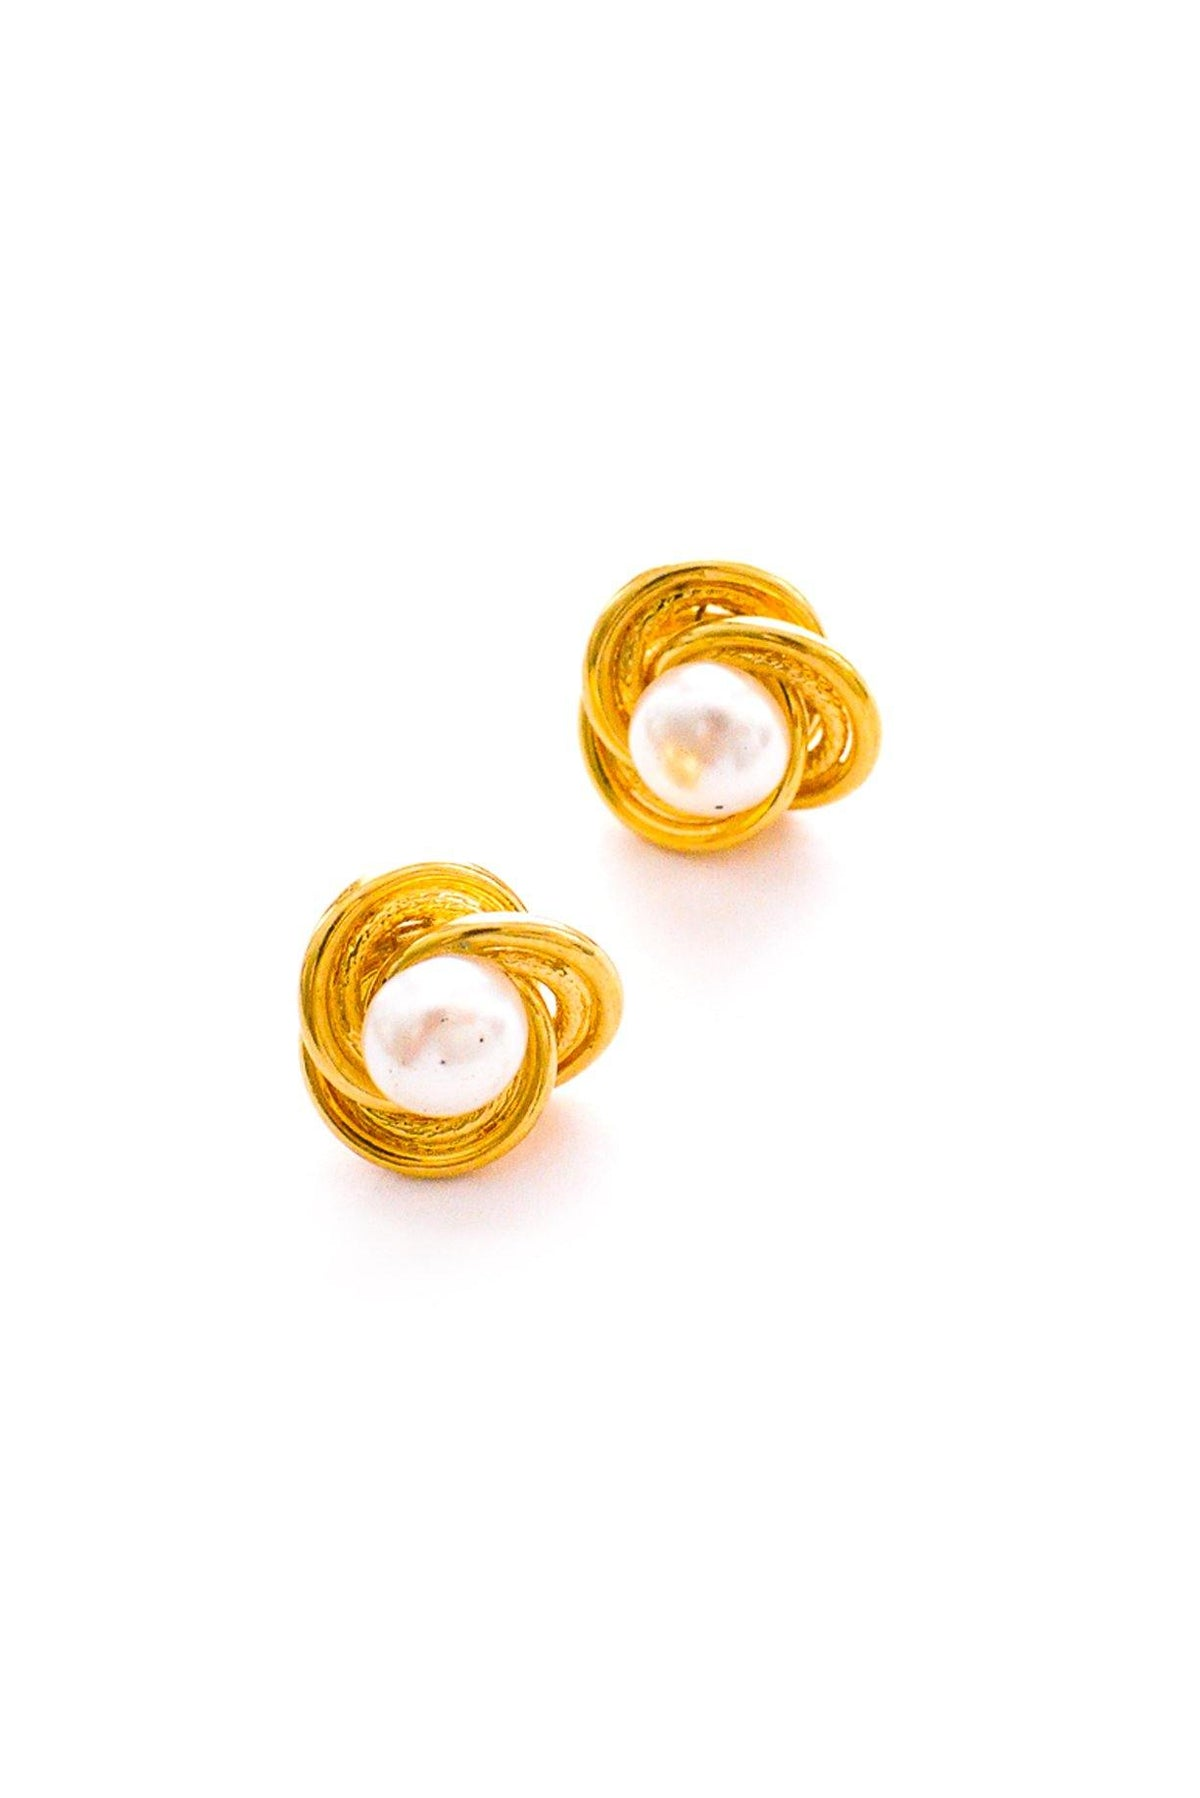 Vintage pearl knot earrings from Sweet & Spark.